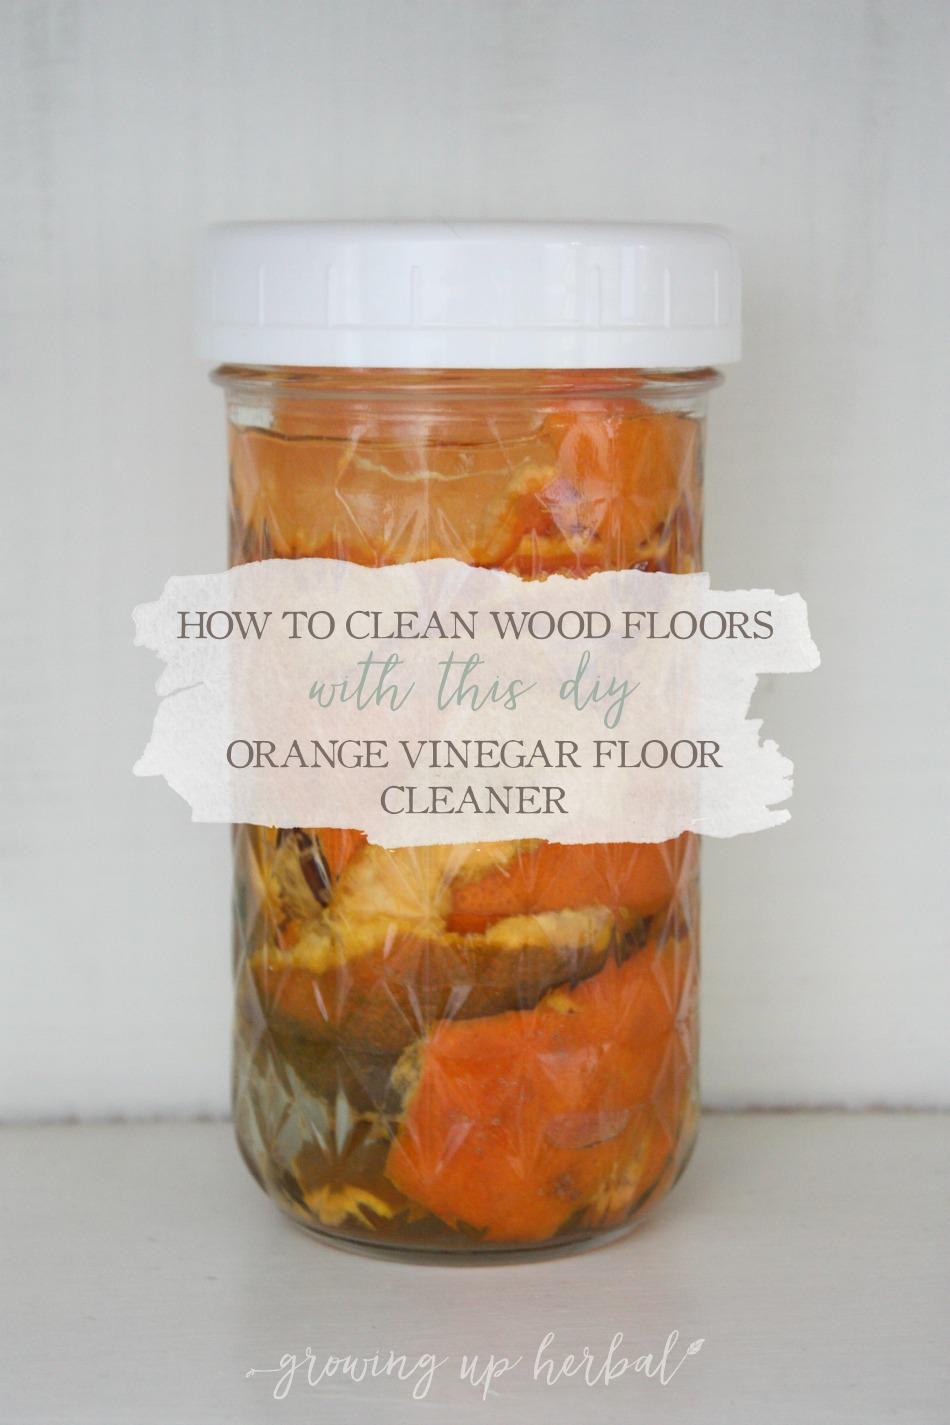 Clean Wood Floors With This DIY Orange